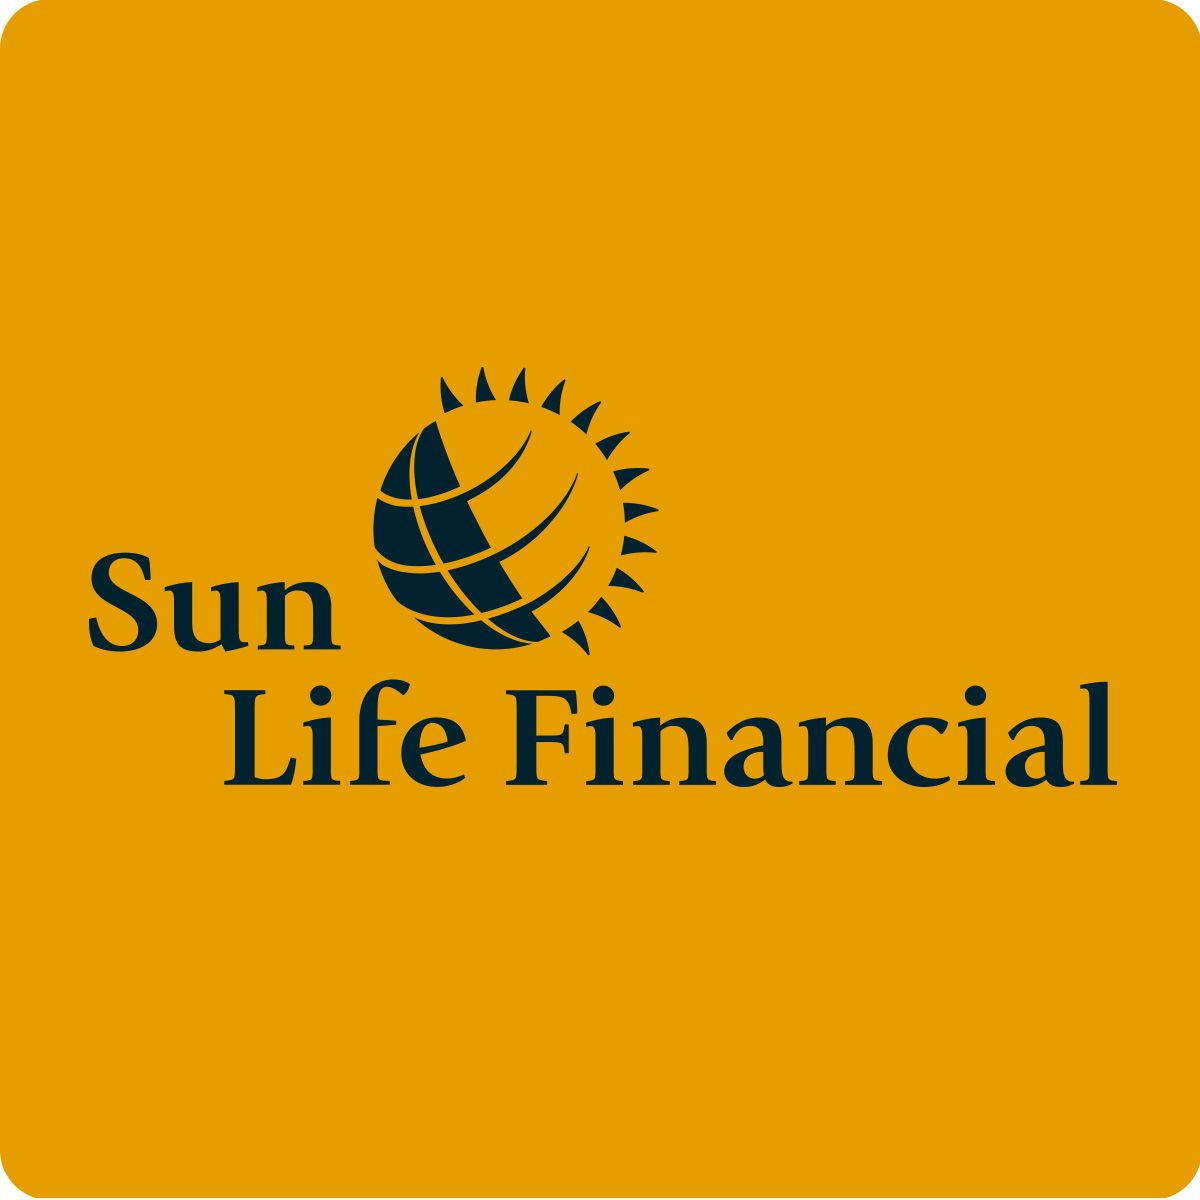 Sun Life Financial can help you build and protect your.